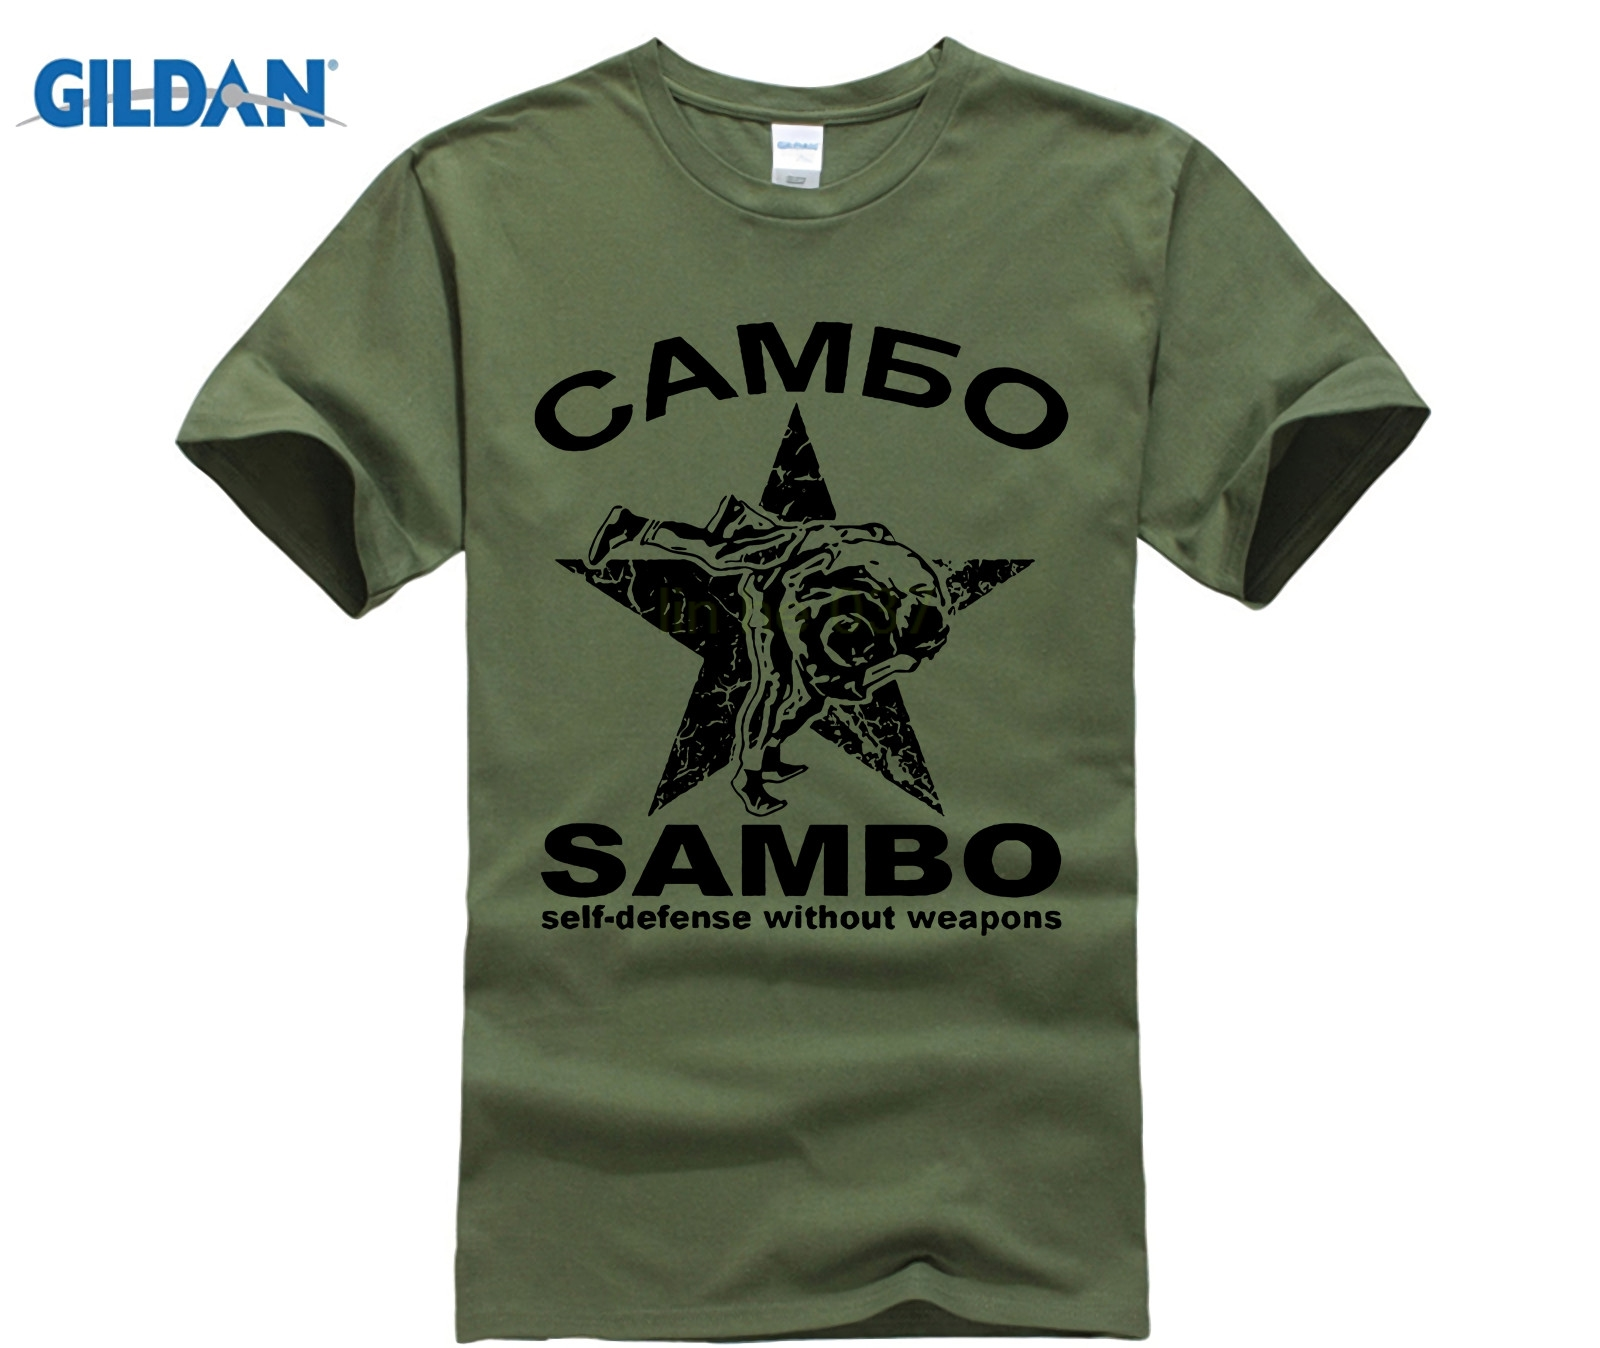 Fashion Hot Sale 100% Cotton Sambo CAMBO Self Defence Without Weapon Russian Kung Fu Army Green T-shirt Tee Shirt